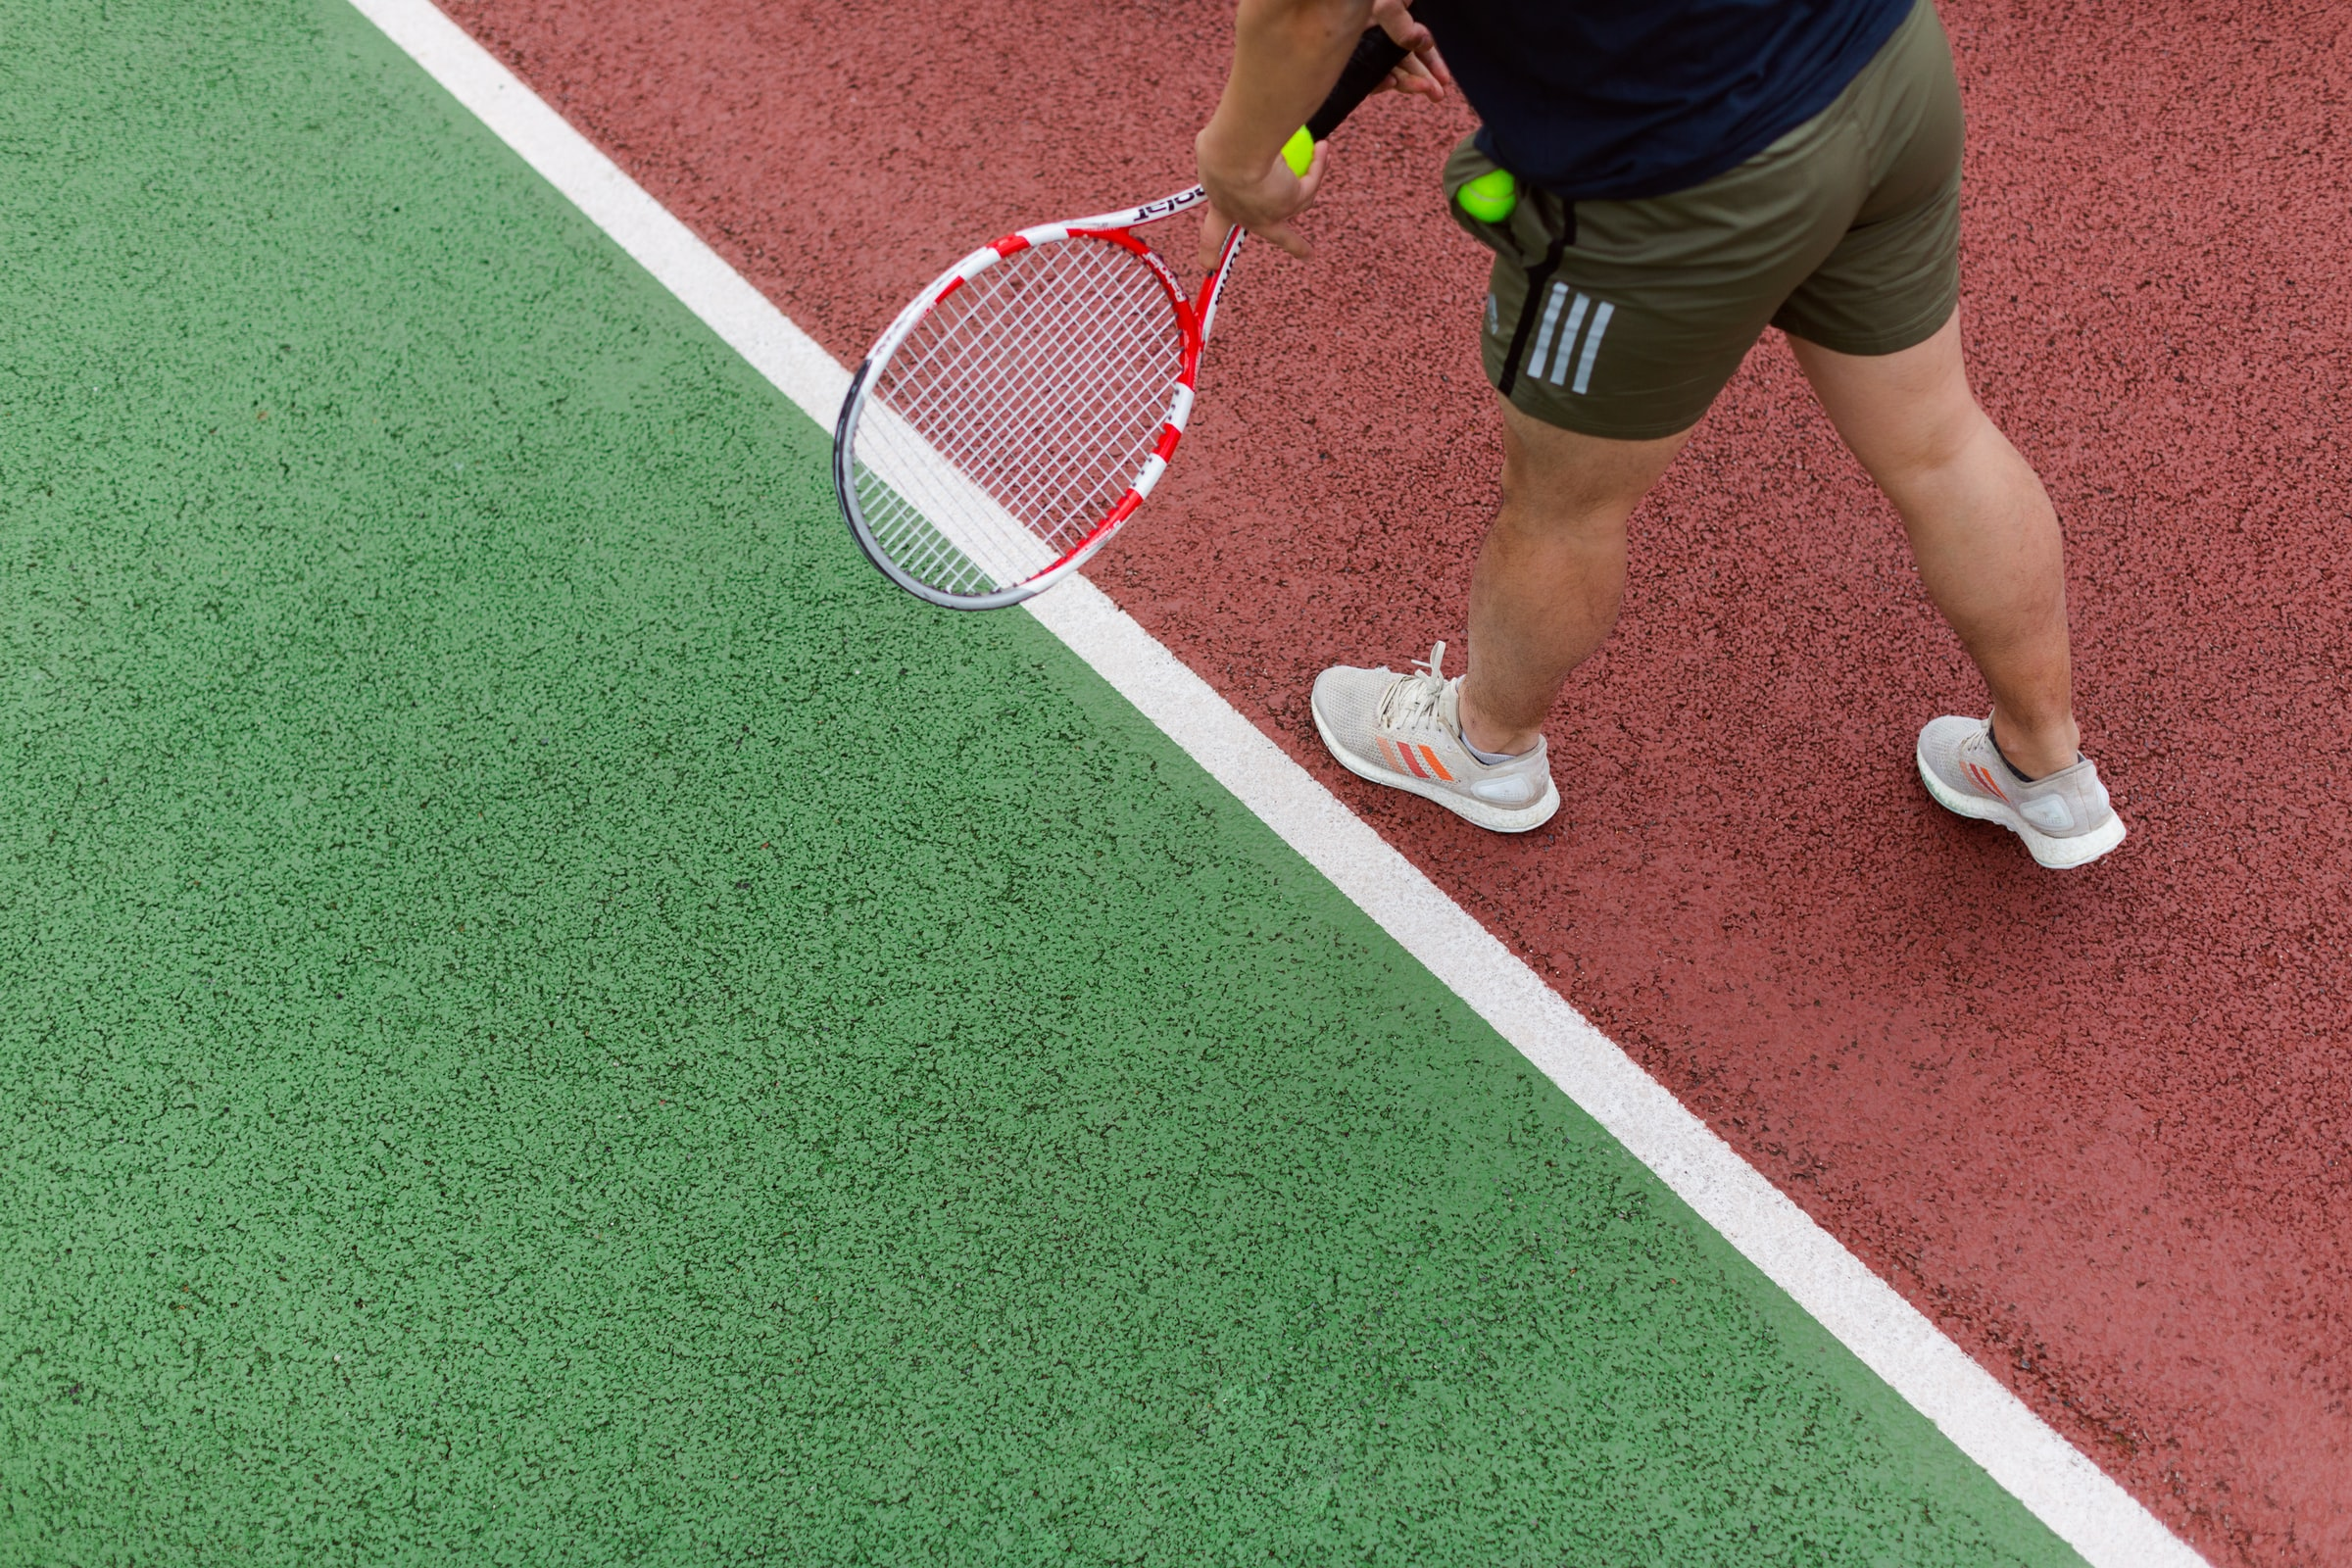 Essential Tennis Tips To Improve Your Forehand Playo